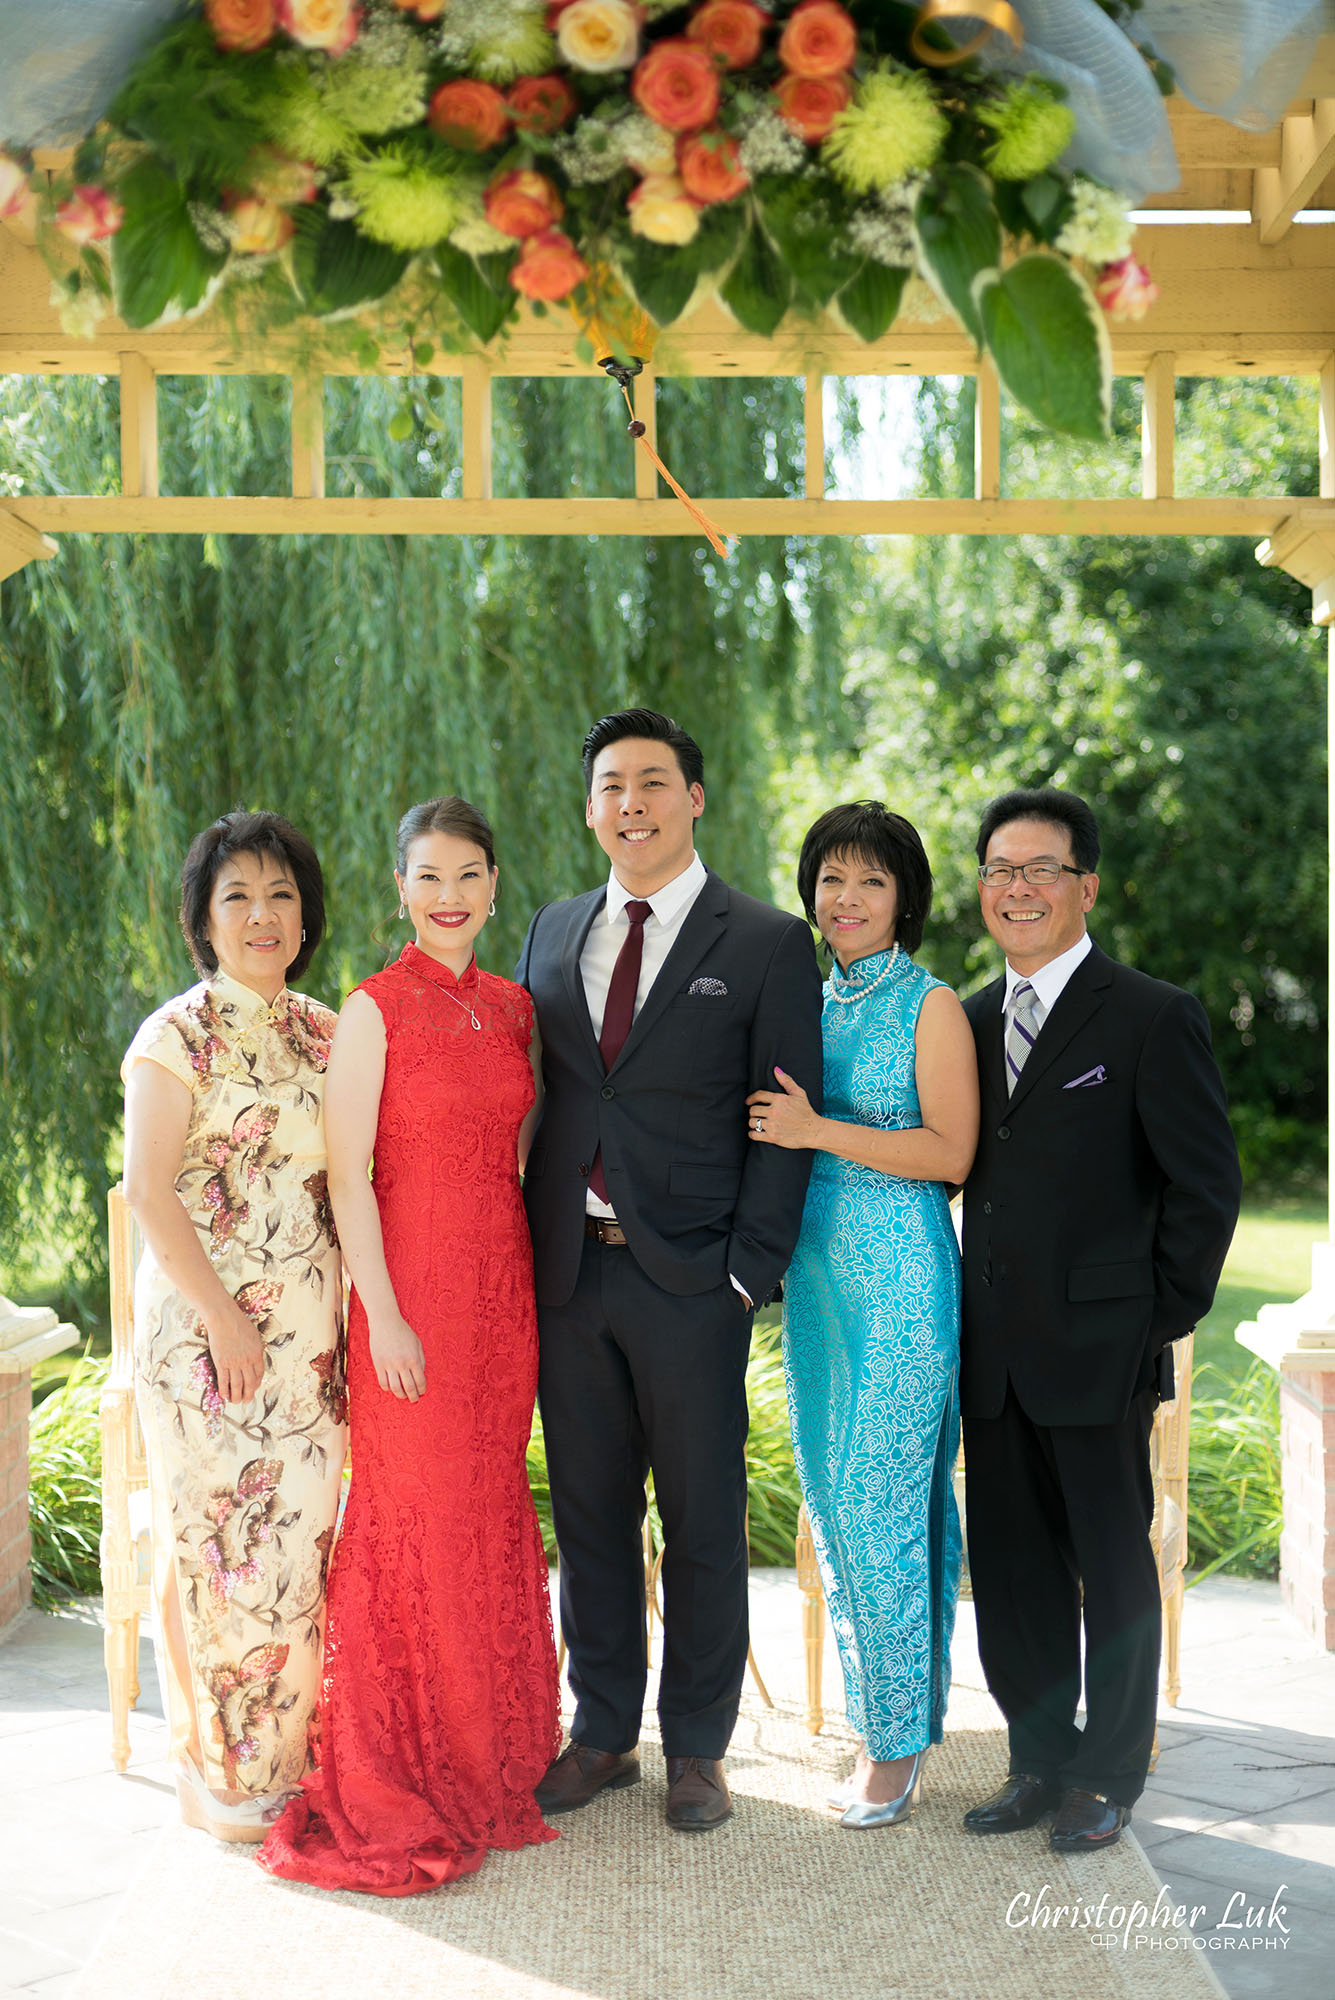 Christopher Luk Photography Toronto Wedding Photographer Chinese Tea Ceremony Bride Groom Mother Father Candid Natural Photojournalistic Happy Smile Family Portrait